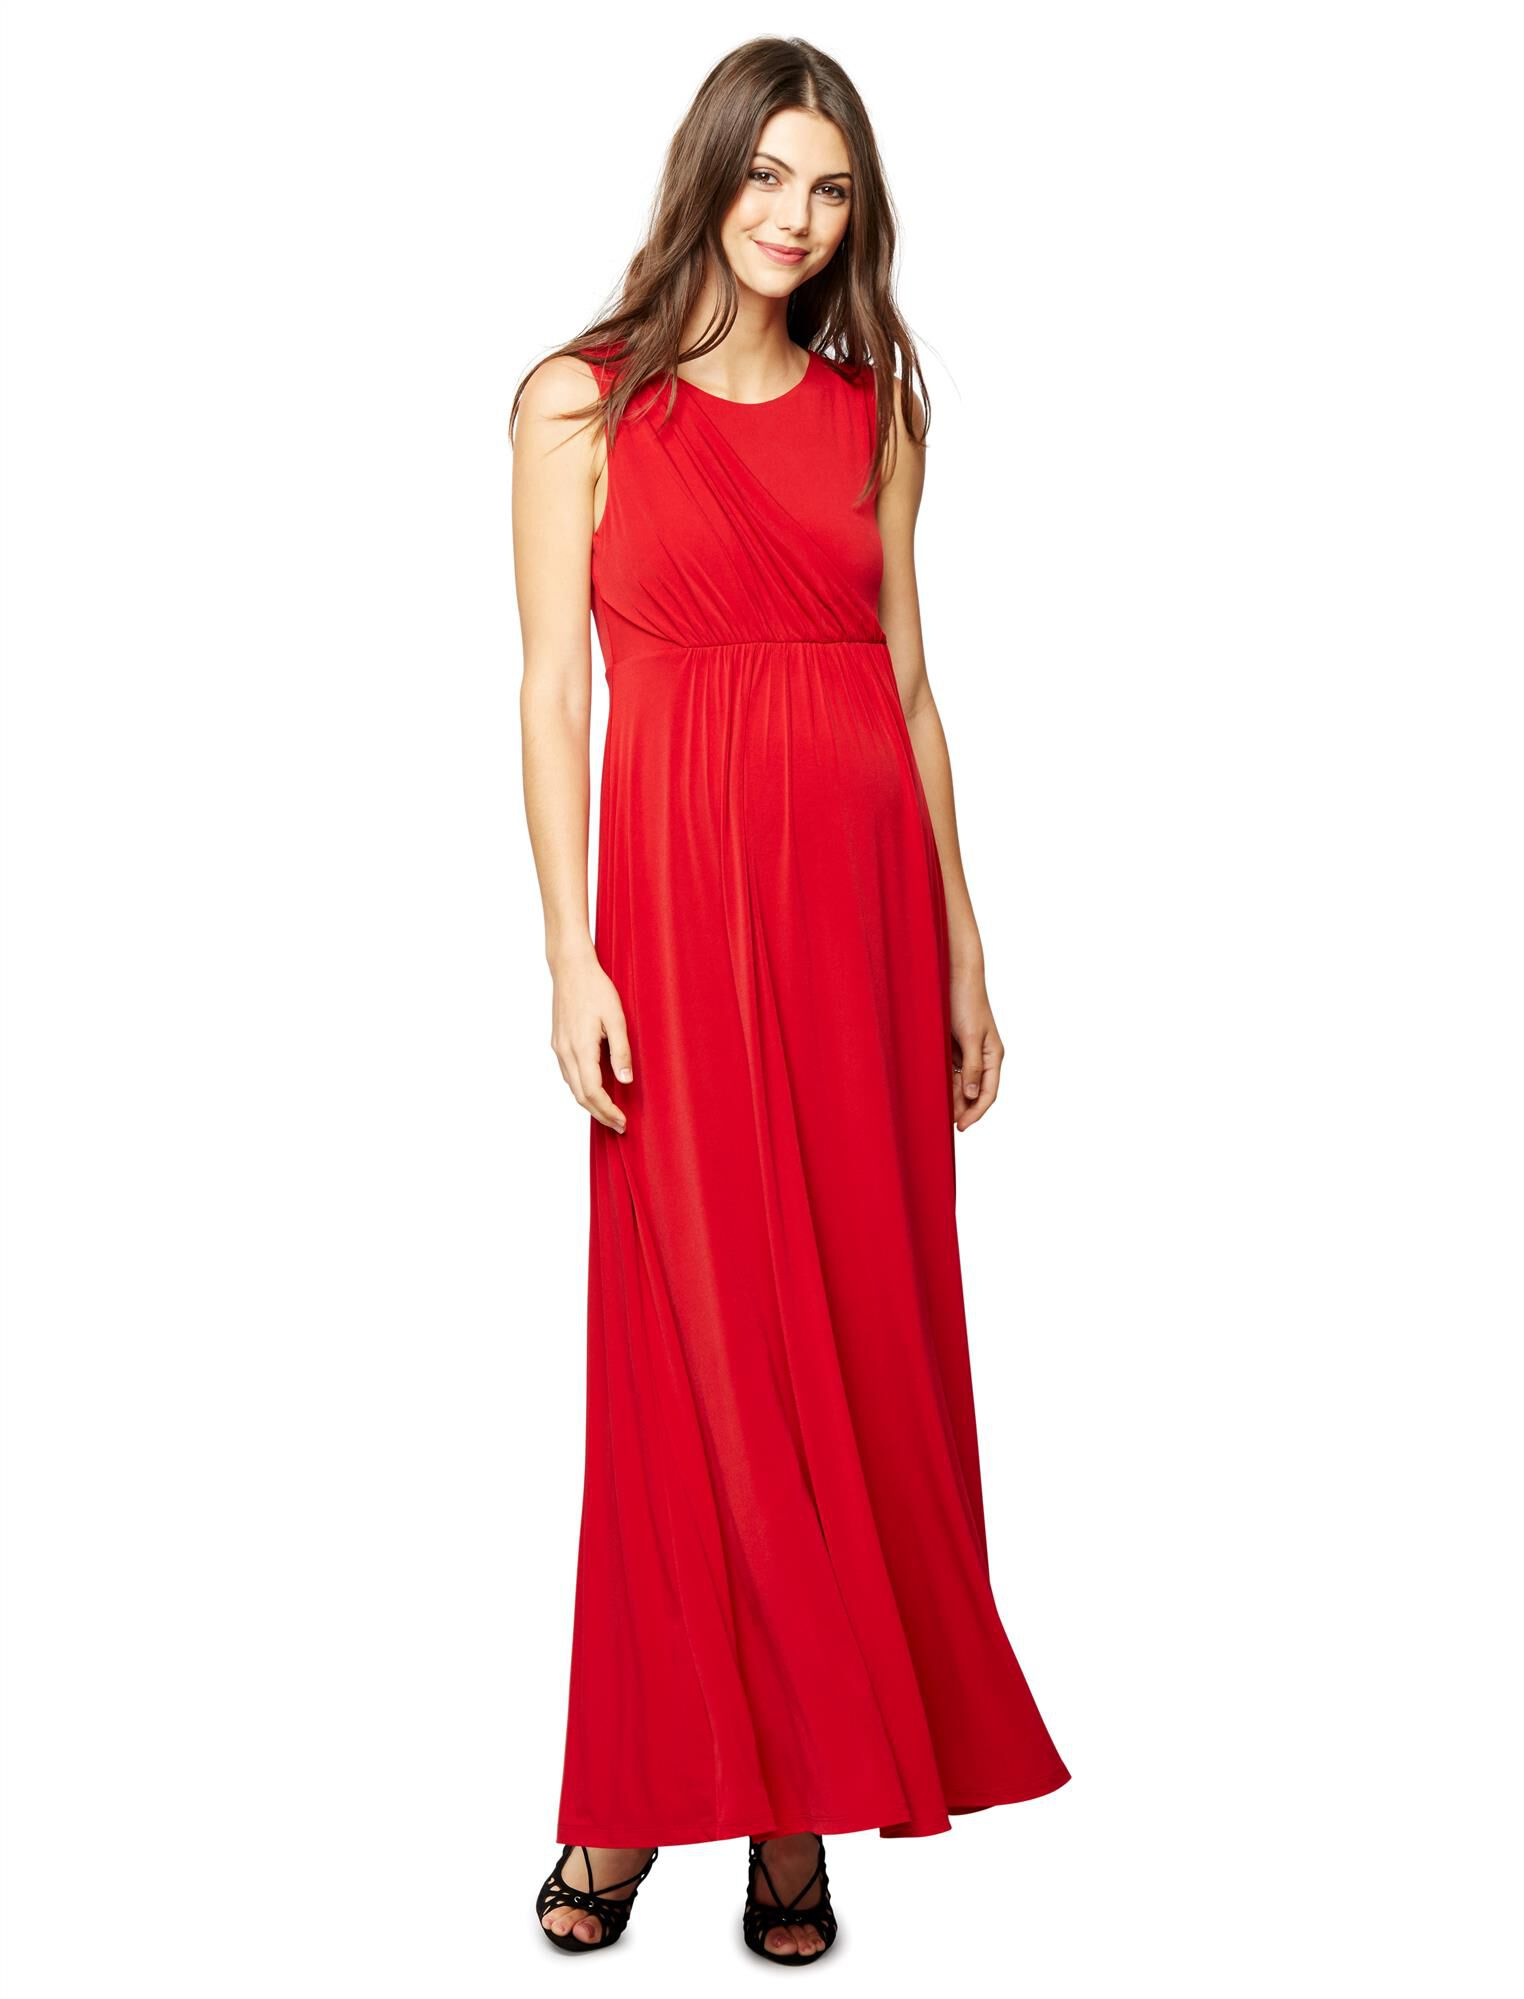 Draped Maternity Gown- Red